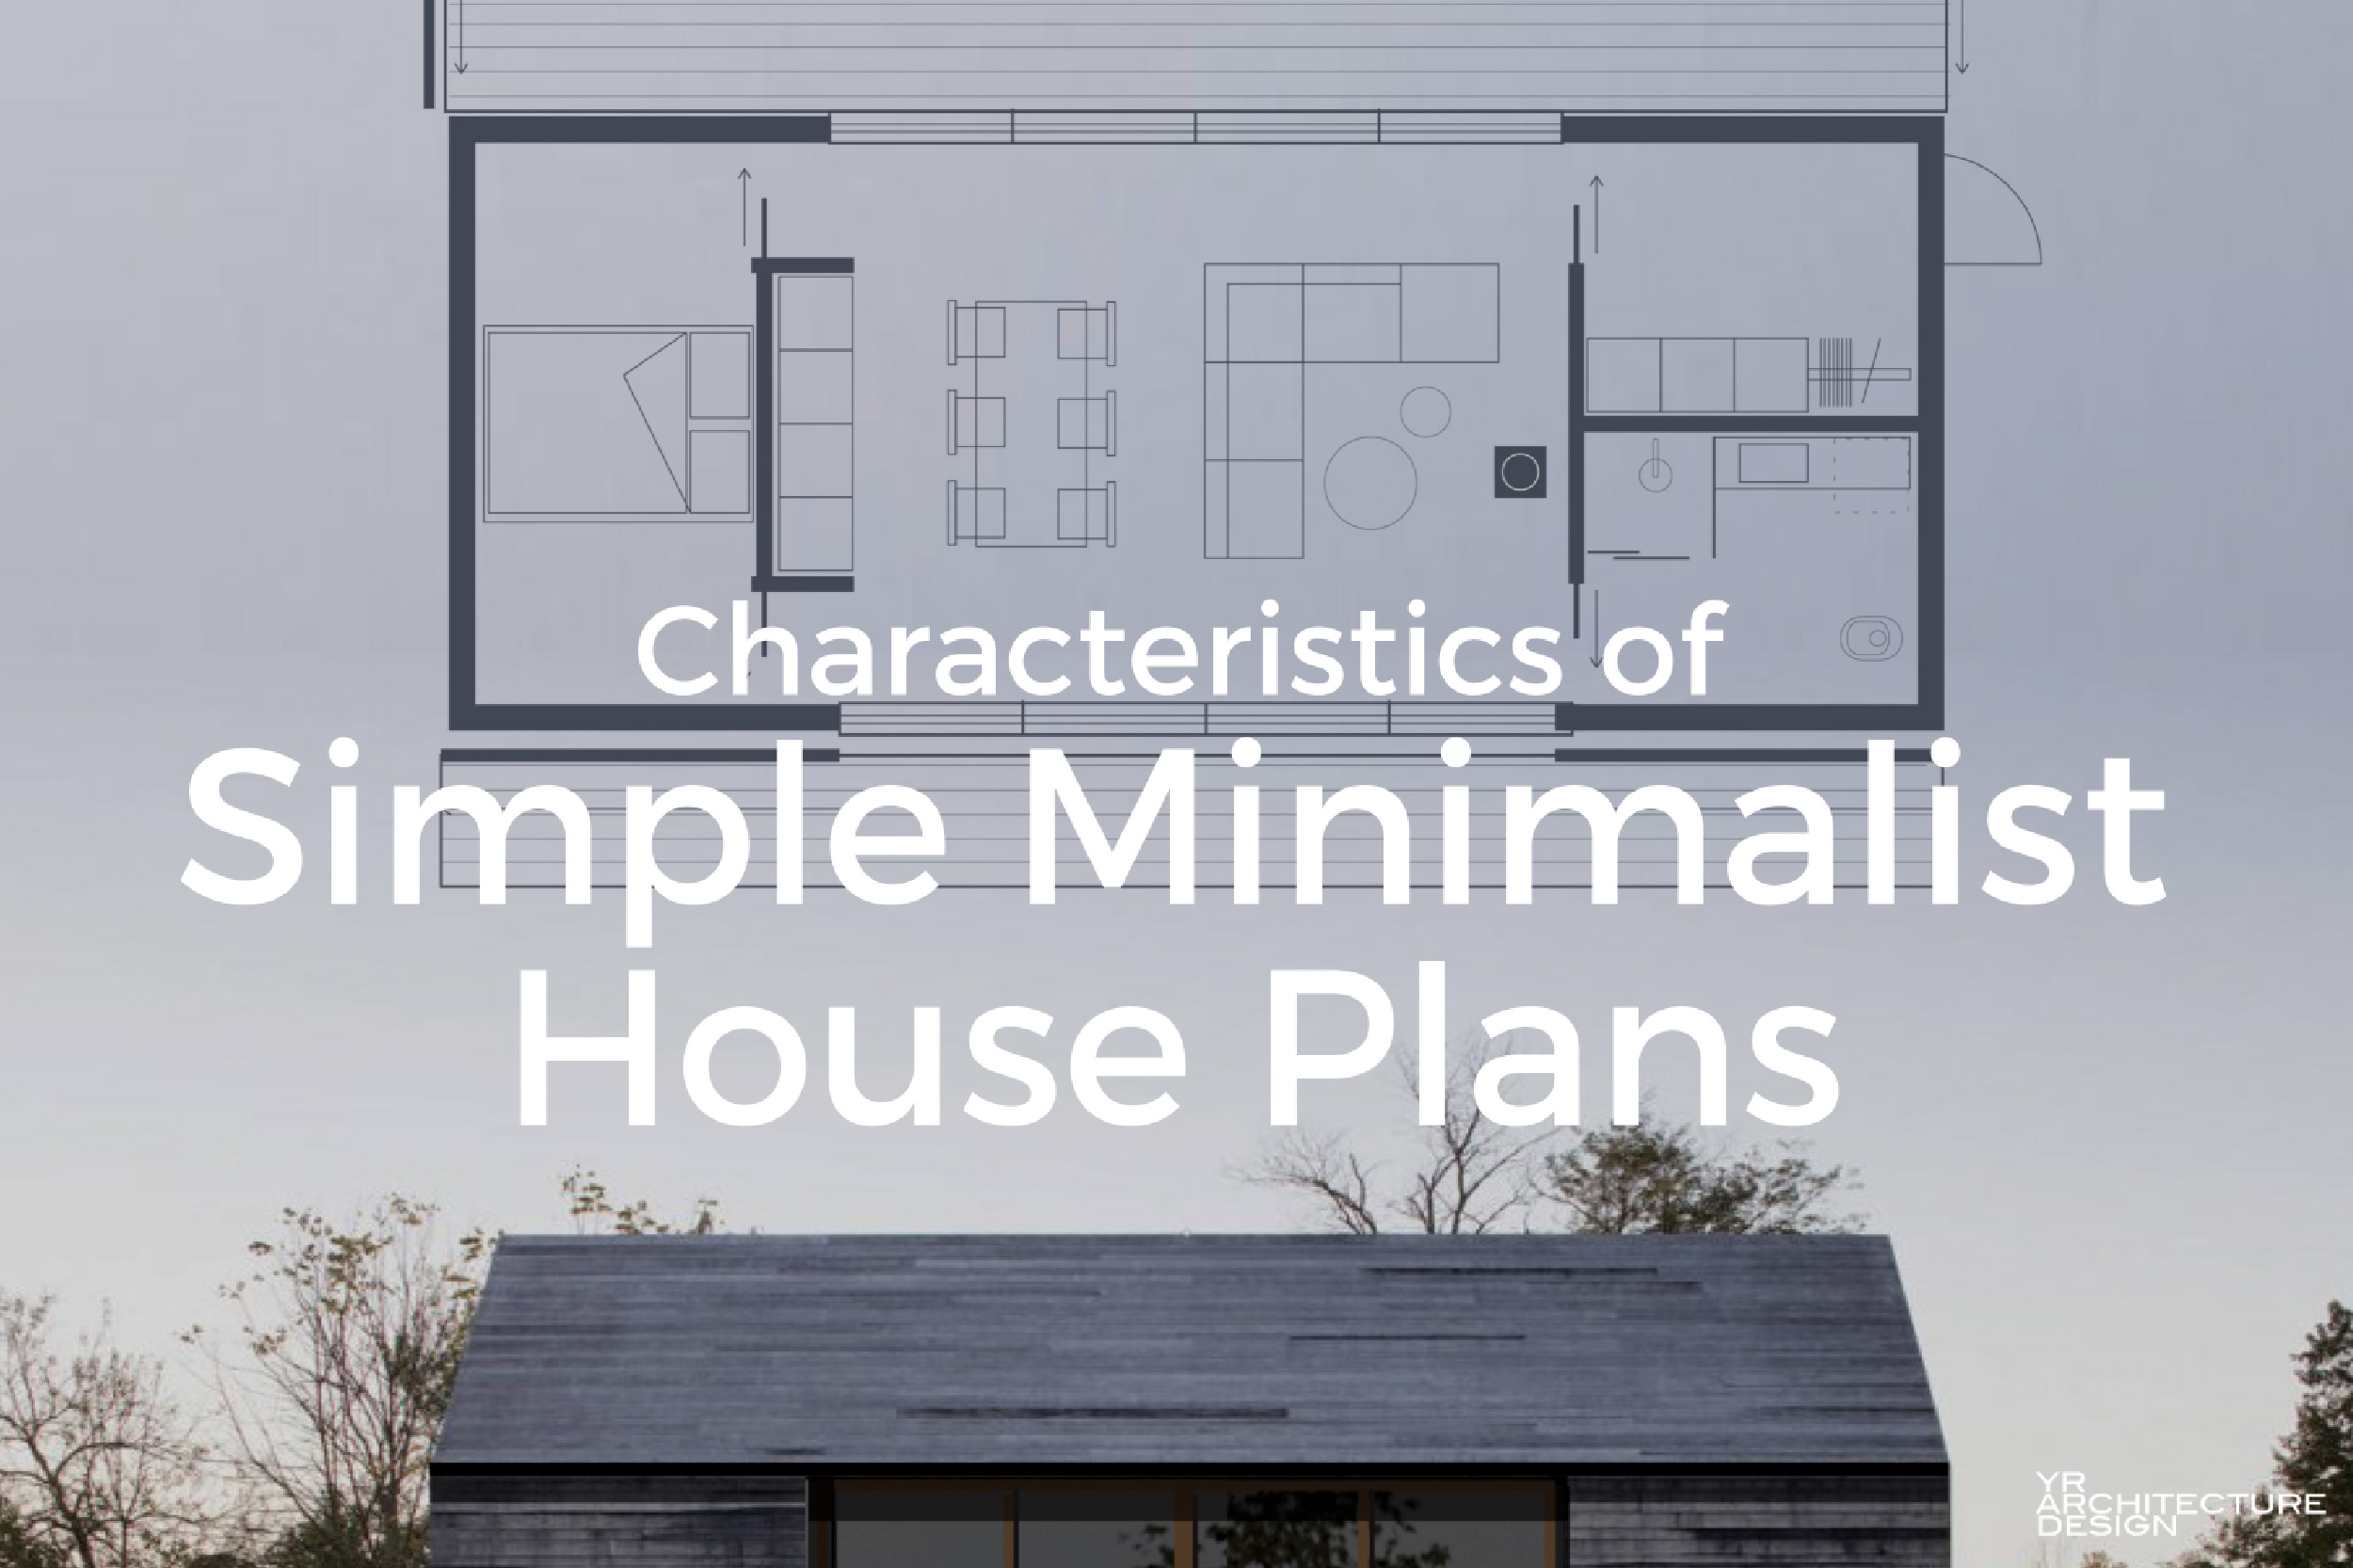 Characteristics of Simple Minimalist House Plans Characteristics of Simple Minimalist House Plans  View Larger Image  Characteristics